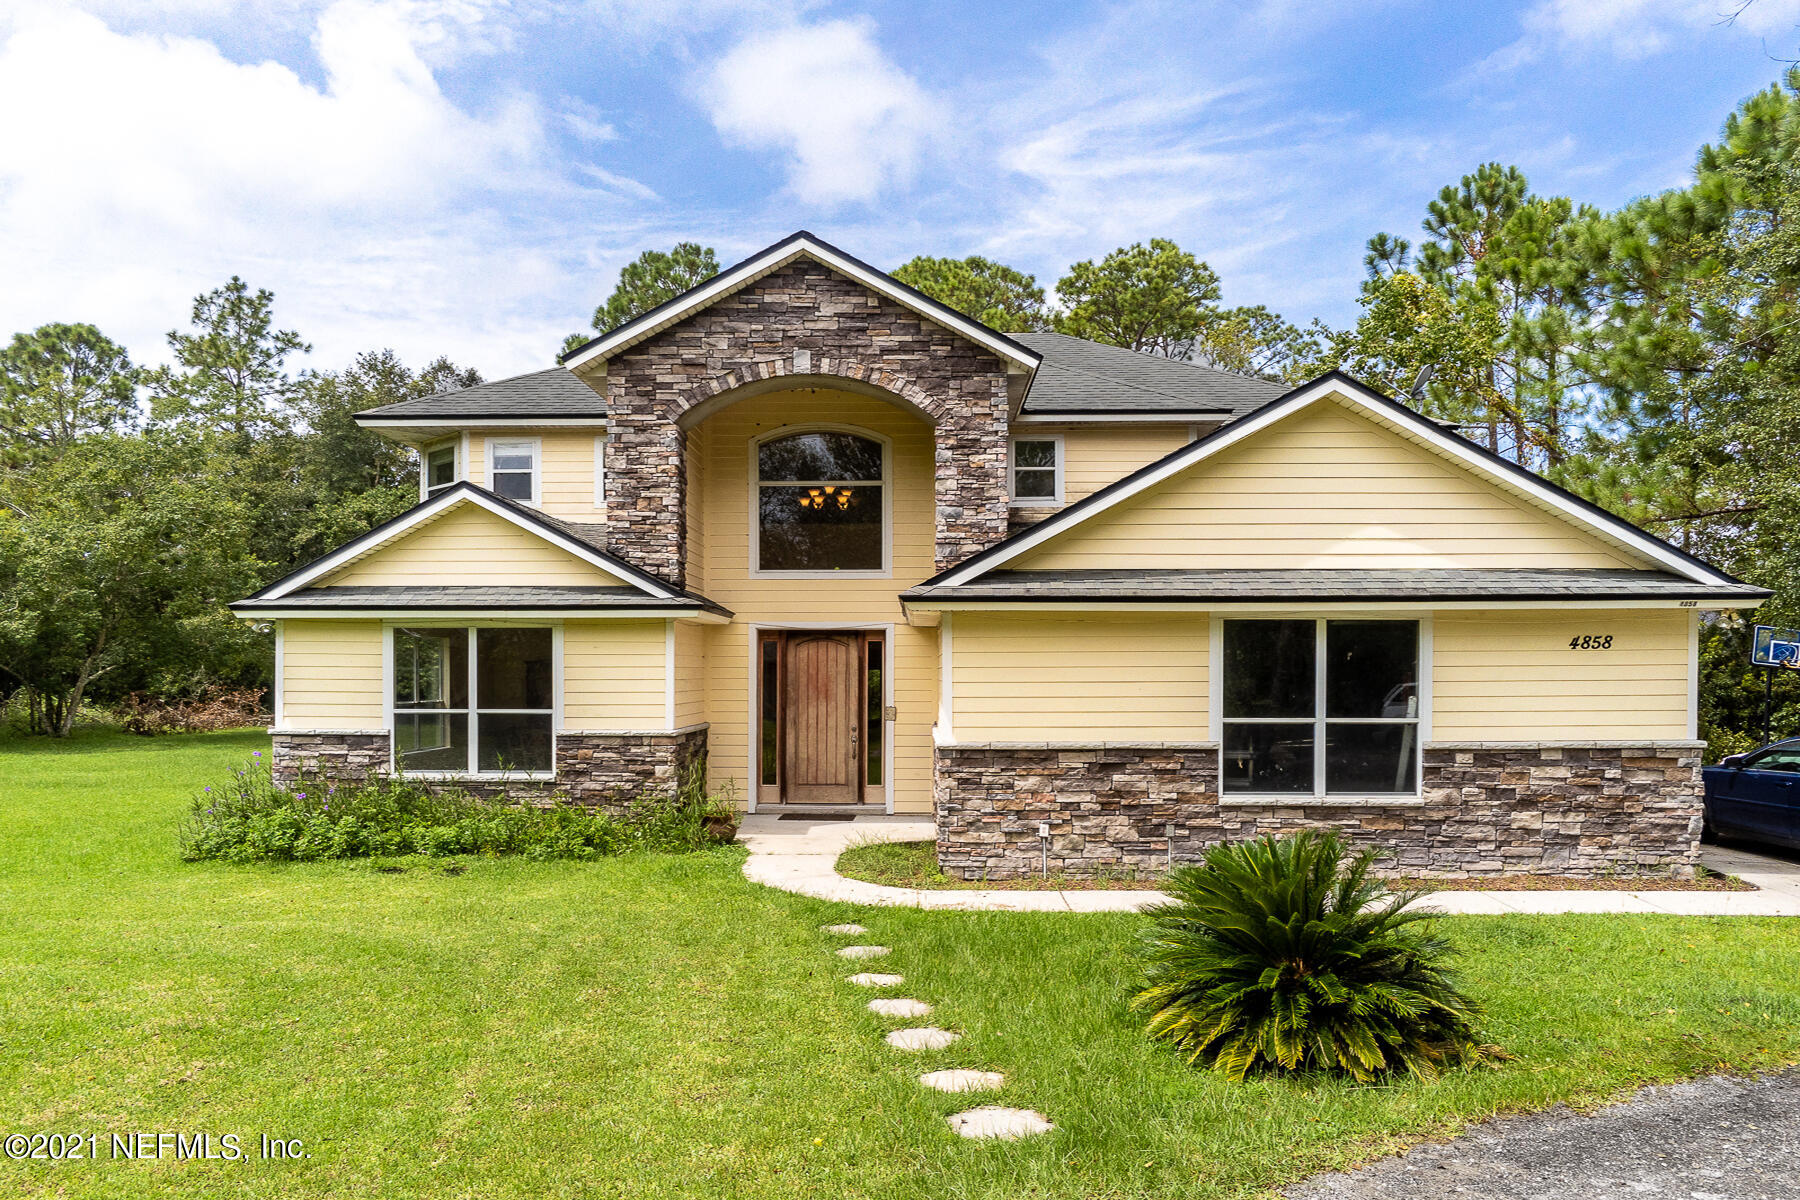 4858 RAGGEDY POINT, FLEMING ISLAND, FLORIDA 32003, 5 Bedrooms Bedrooms, ,4 BathroomsBathrooms,Residential,For sale,RAGGEDY POINT,1128530